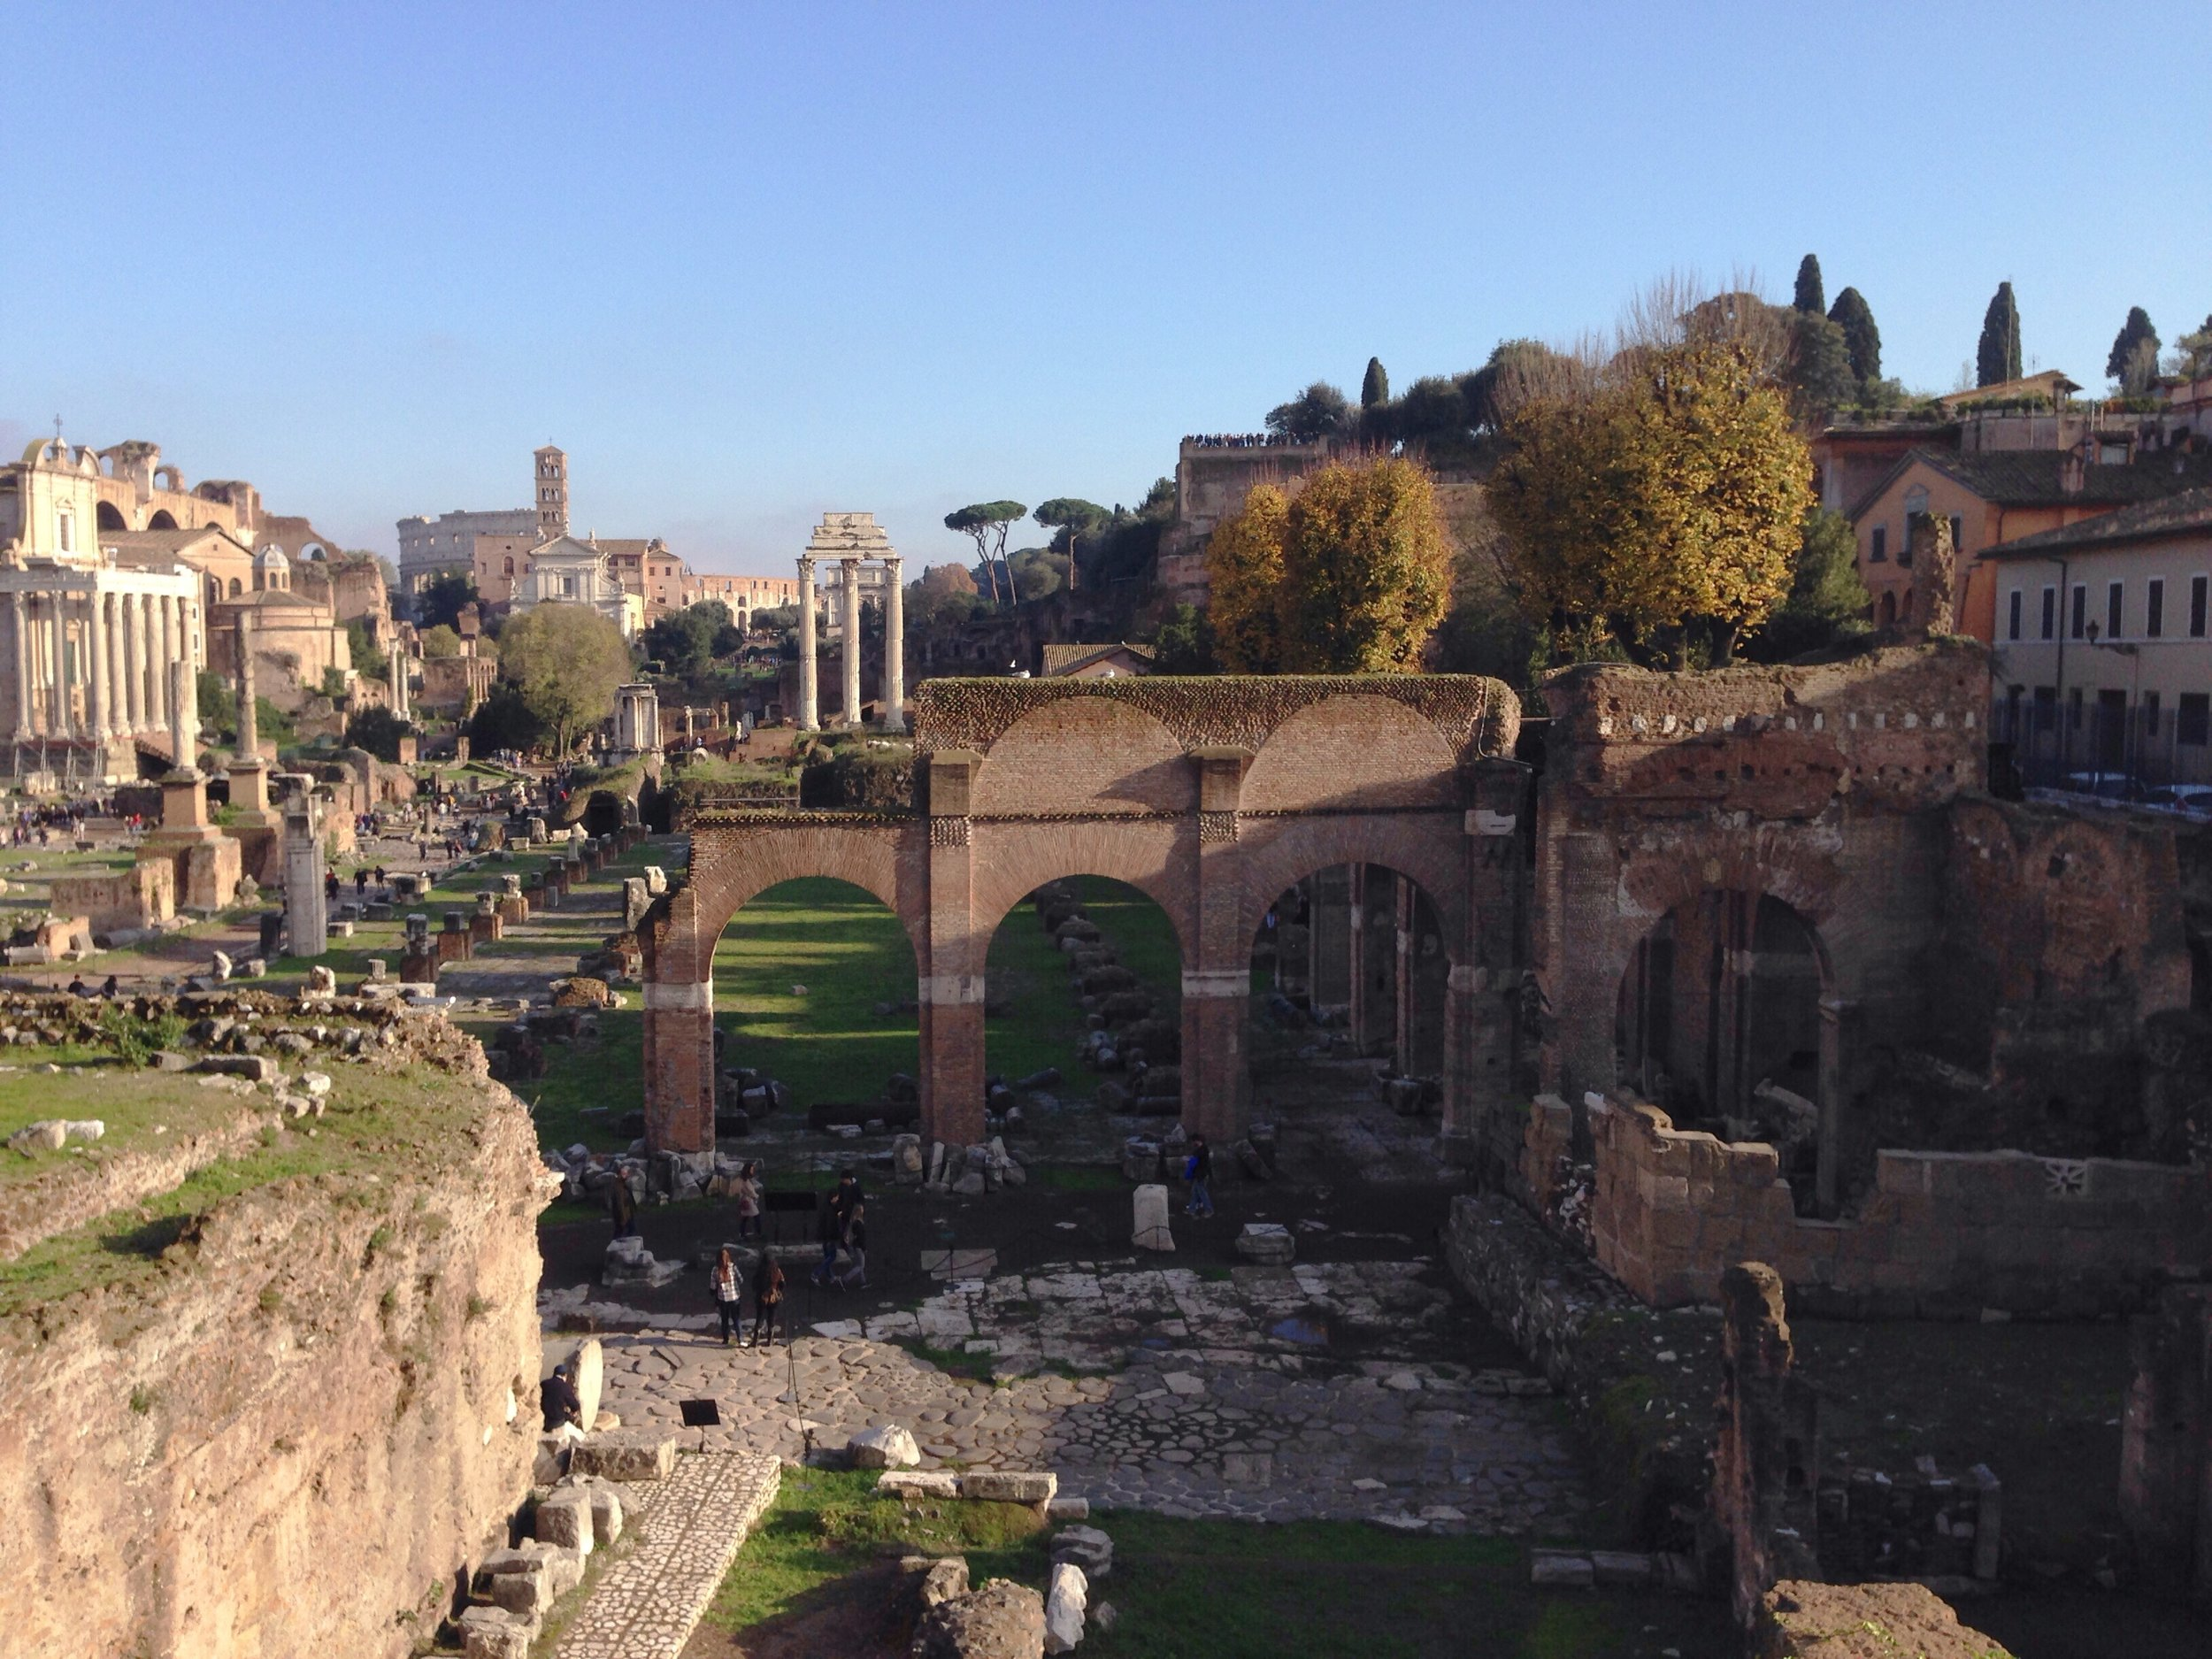 View of the Roman Forum, standing at the Temple of Saturn